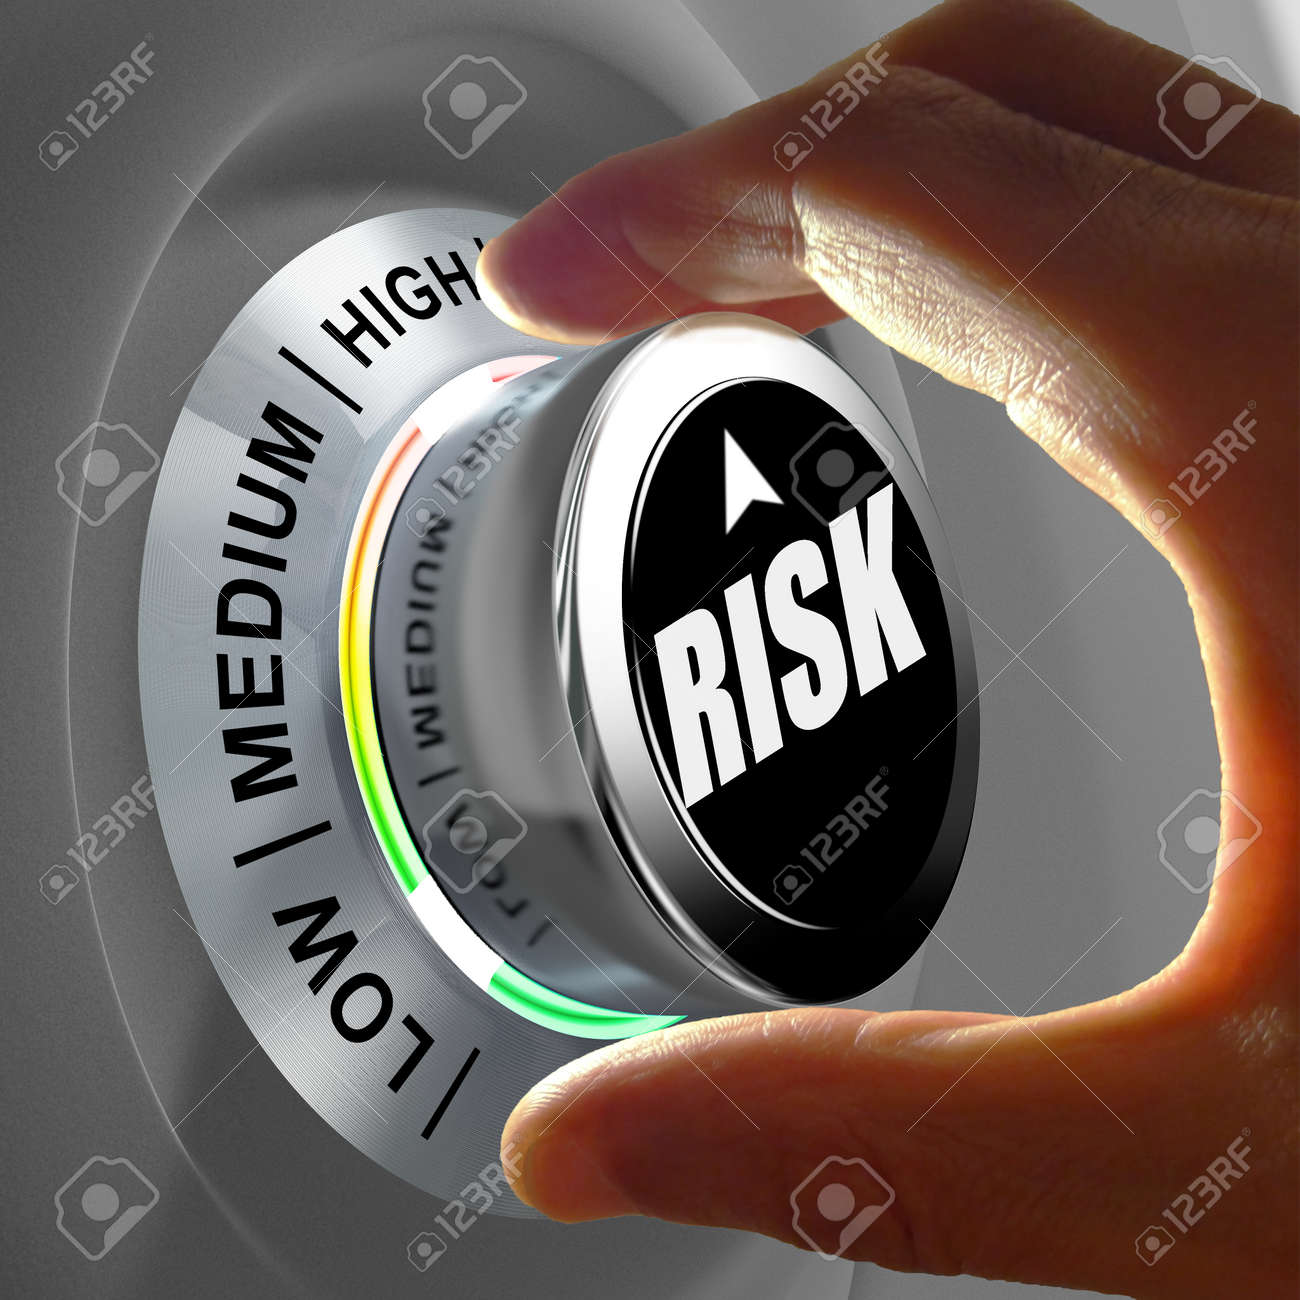 The button shows three levels of risk management. Concept illustration. - 32651640